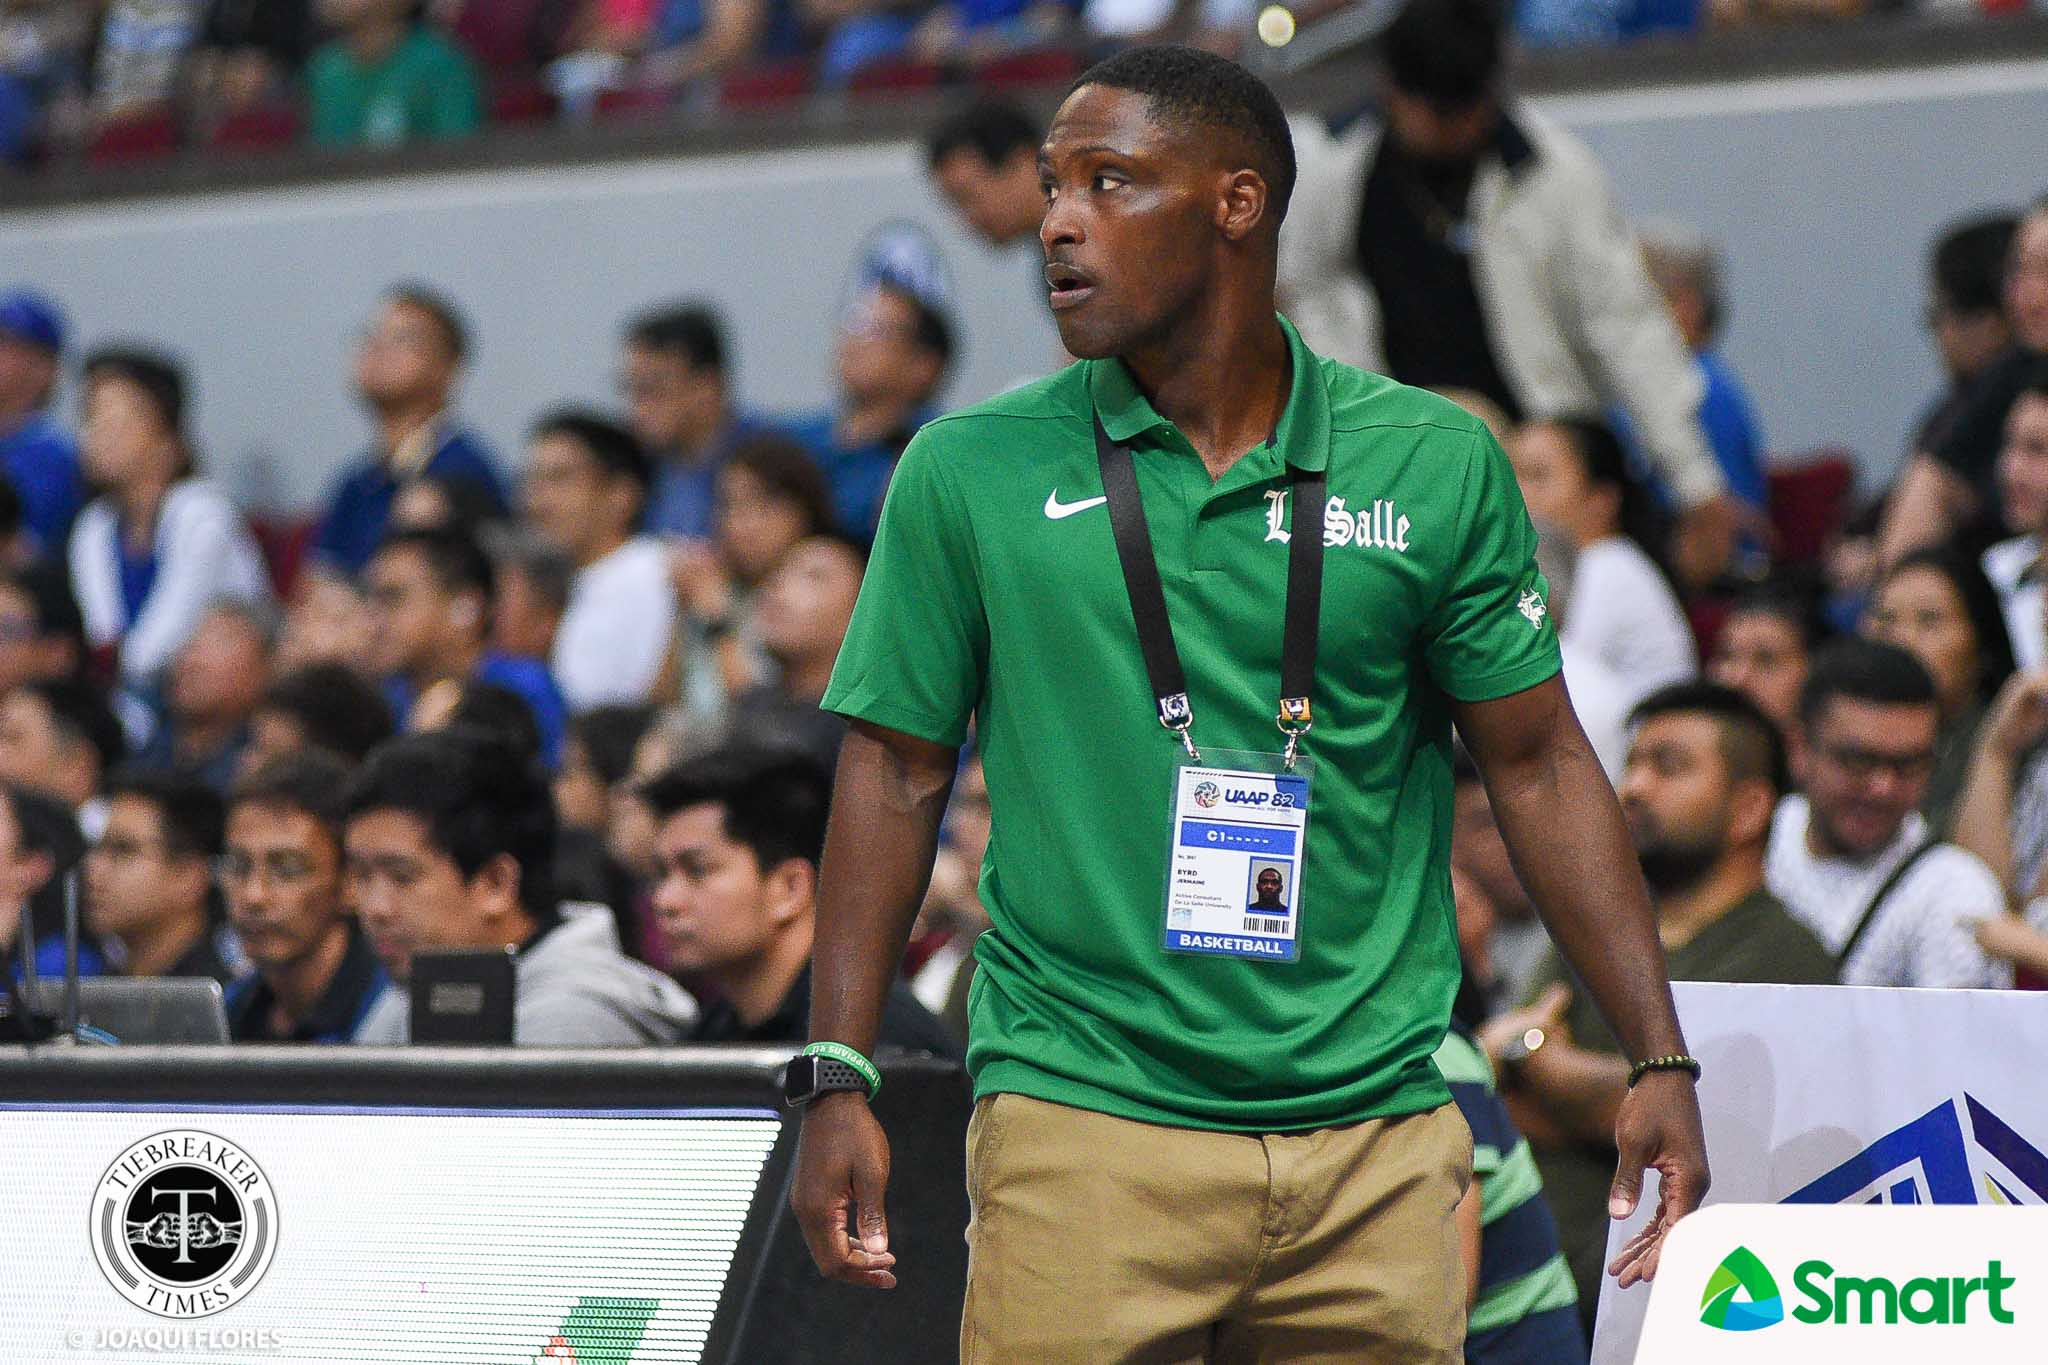 Tiebreaker Times Jermaine Byrd hopes to get another shot at Ateneo Basketball DLSU News UAAP  UAAP Season 82 Men's Basketball UAAP Season 82 Tab Baldwin Jermaine Byrd DLSU Men's Basketball